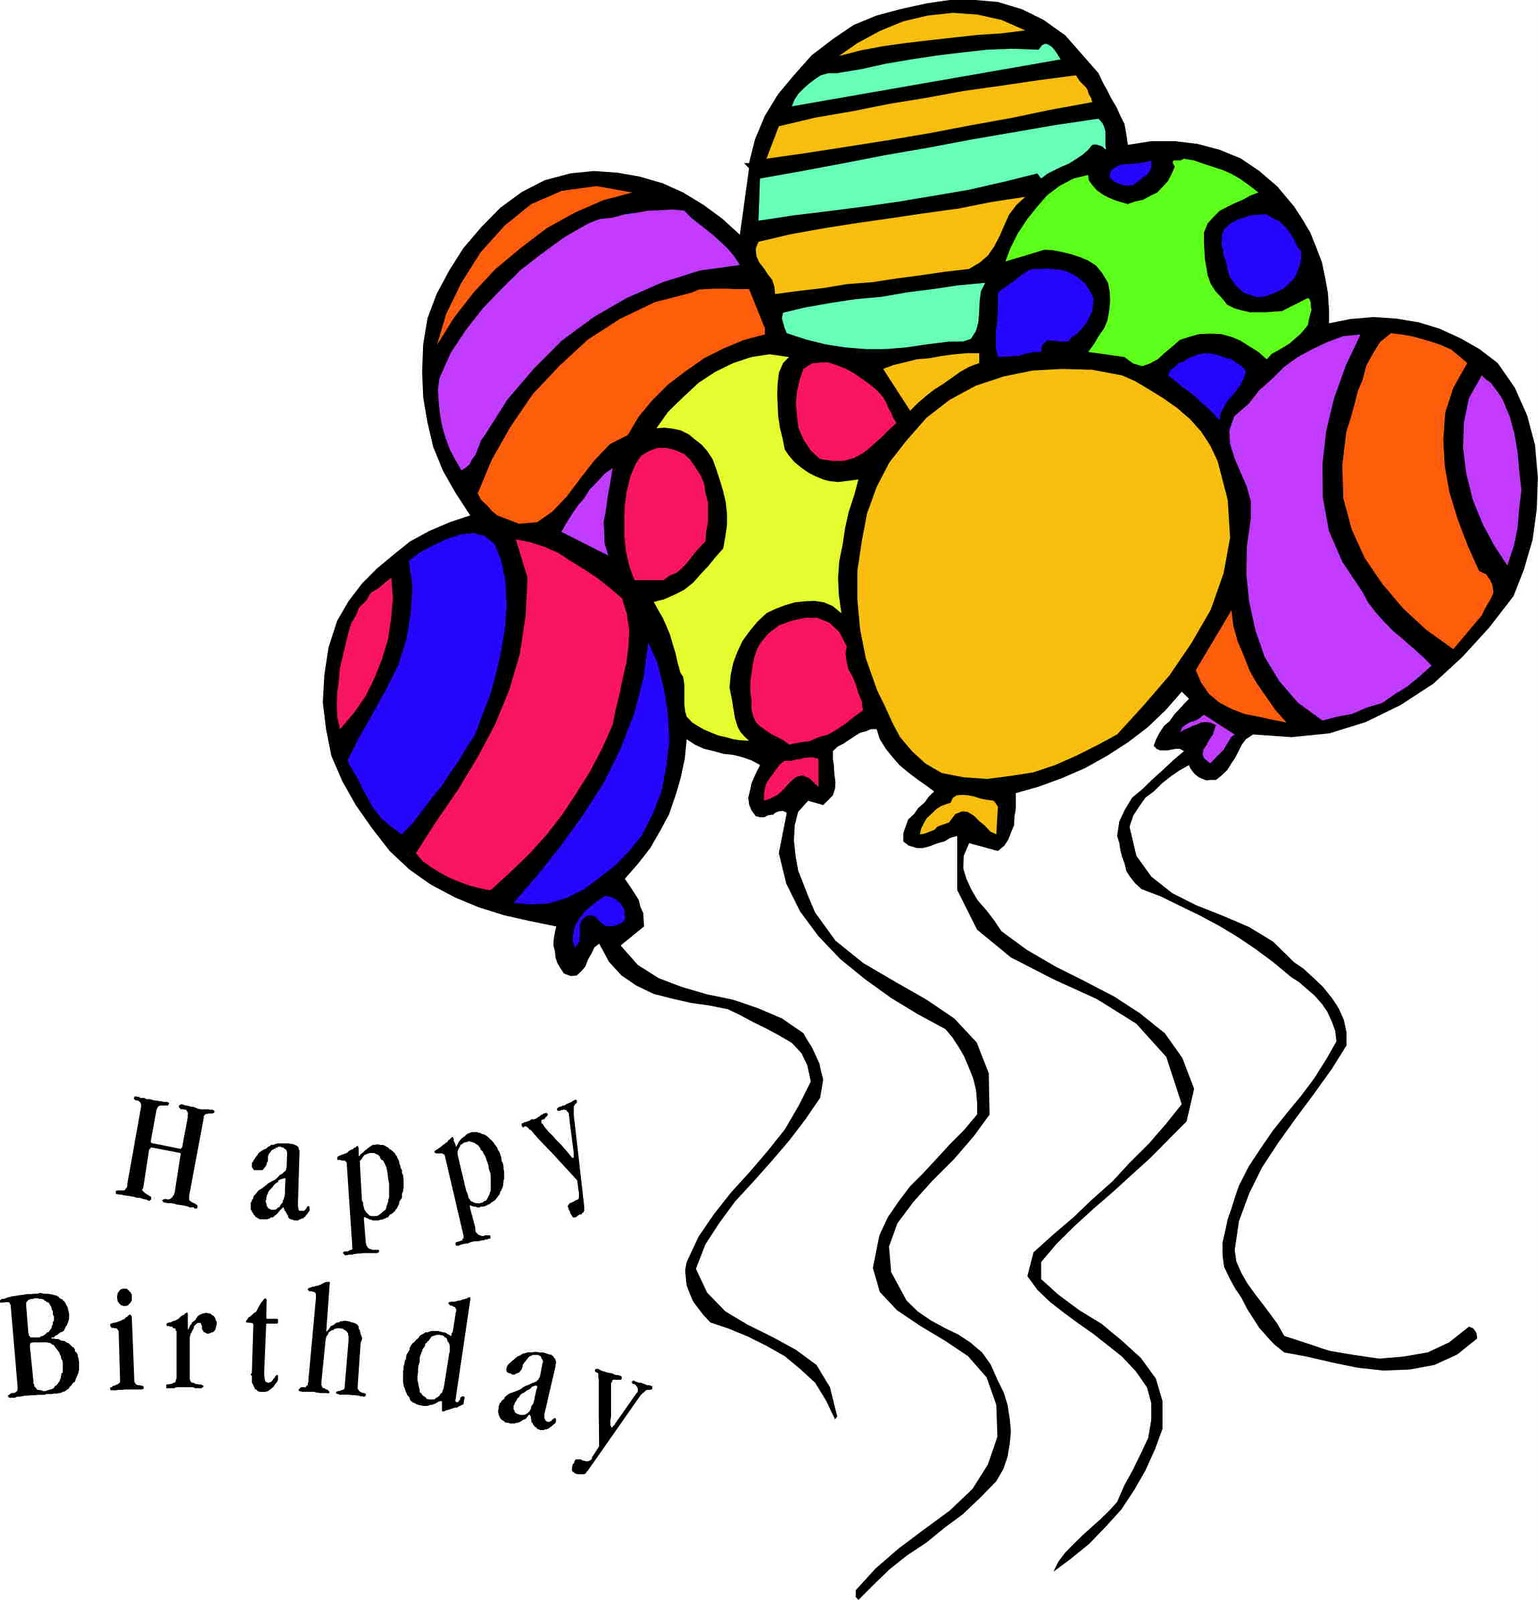 happy birthday clipart for email ; happy-birthday-balloons-clipart-32